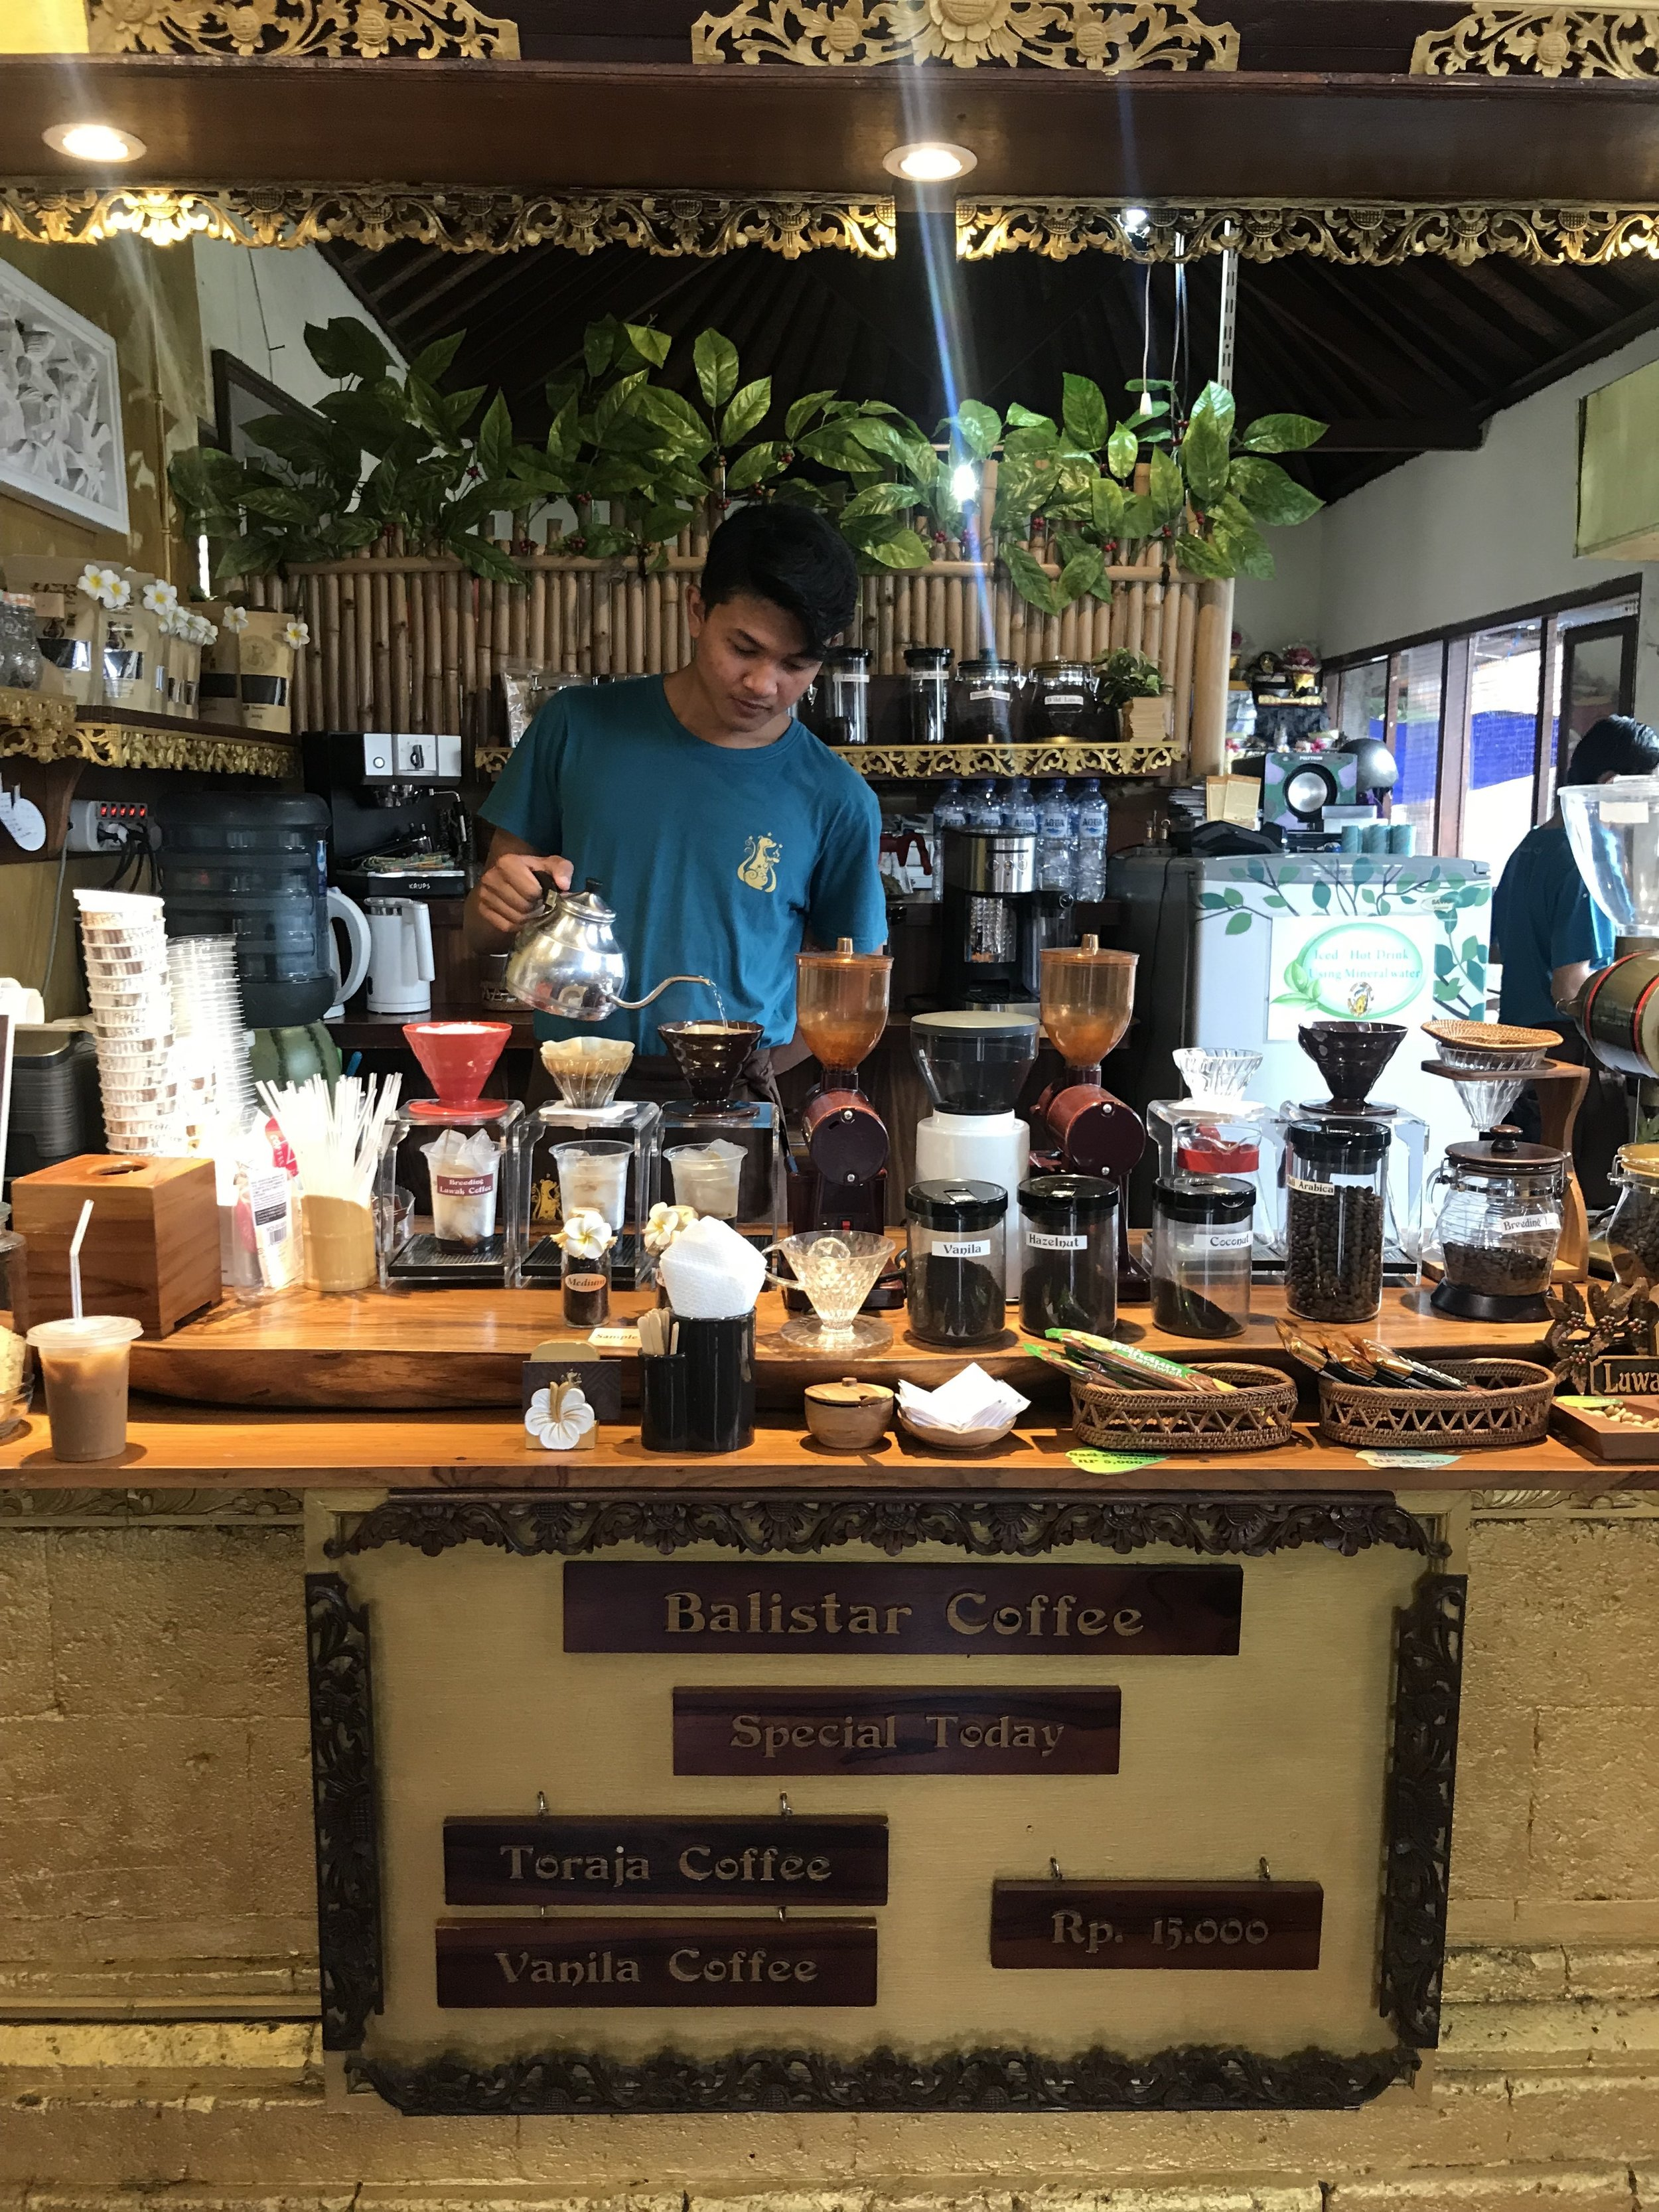 Trying out the very different coffee flavours in the market